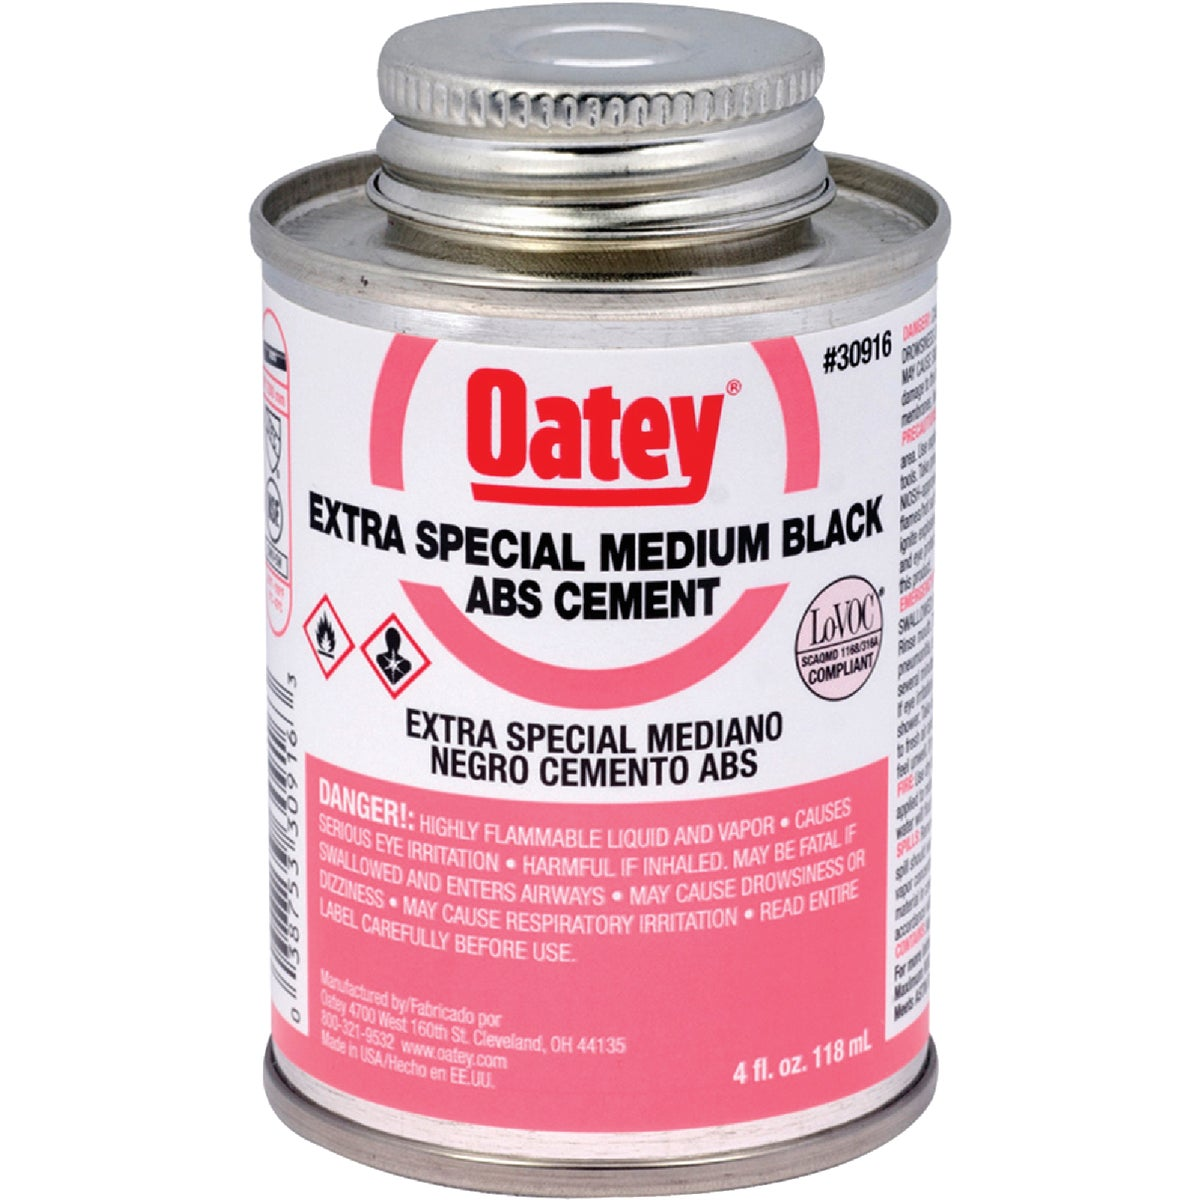 1/4PINT ABS CEMENT - 30916 by Oatey Scs